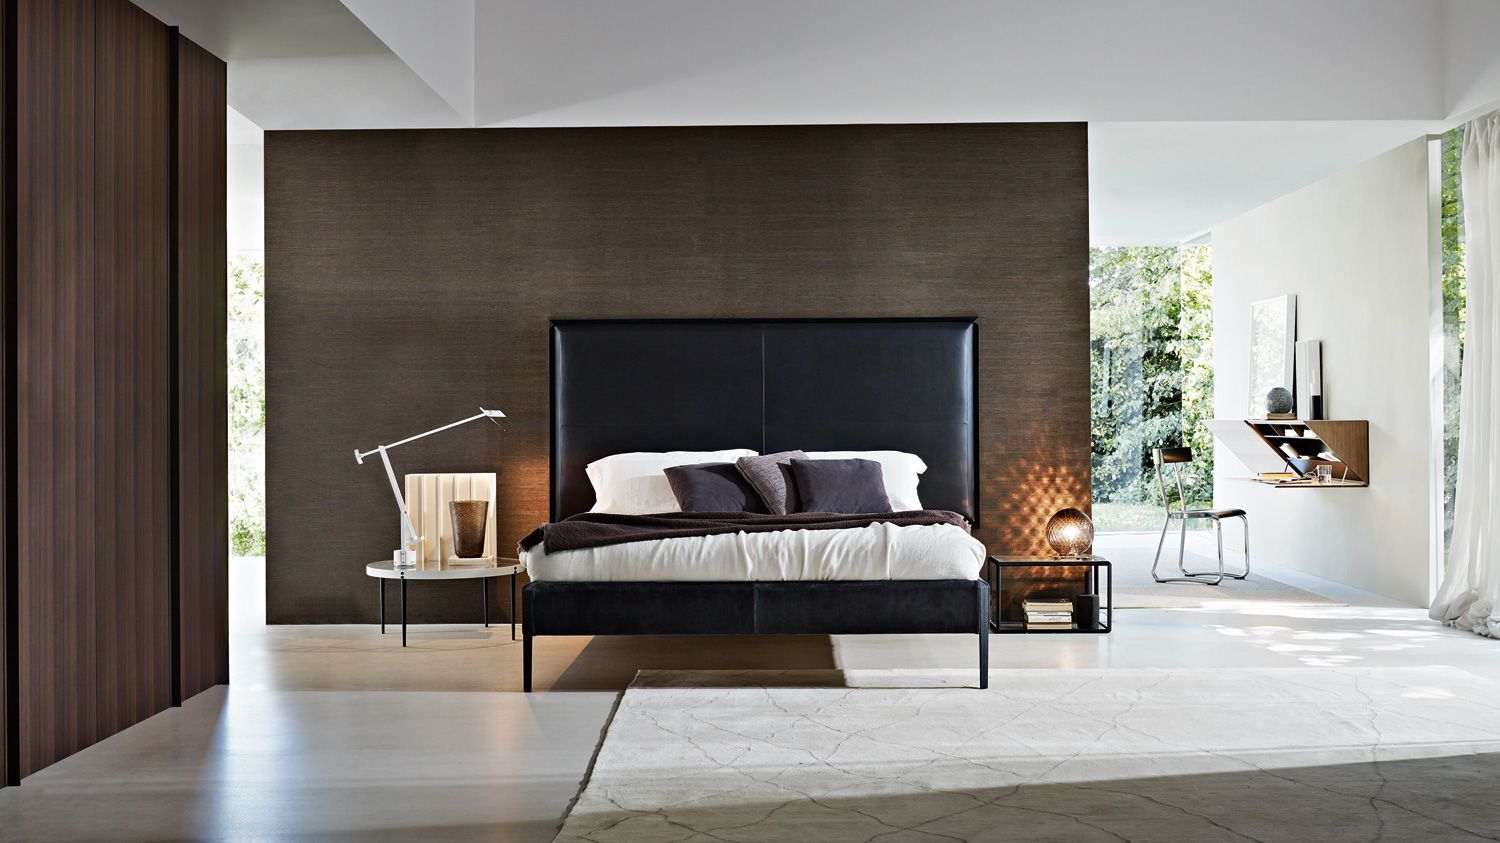 Sweetdreams by molteni hub furniture lighting living for Molteni furniture